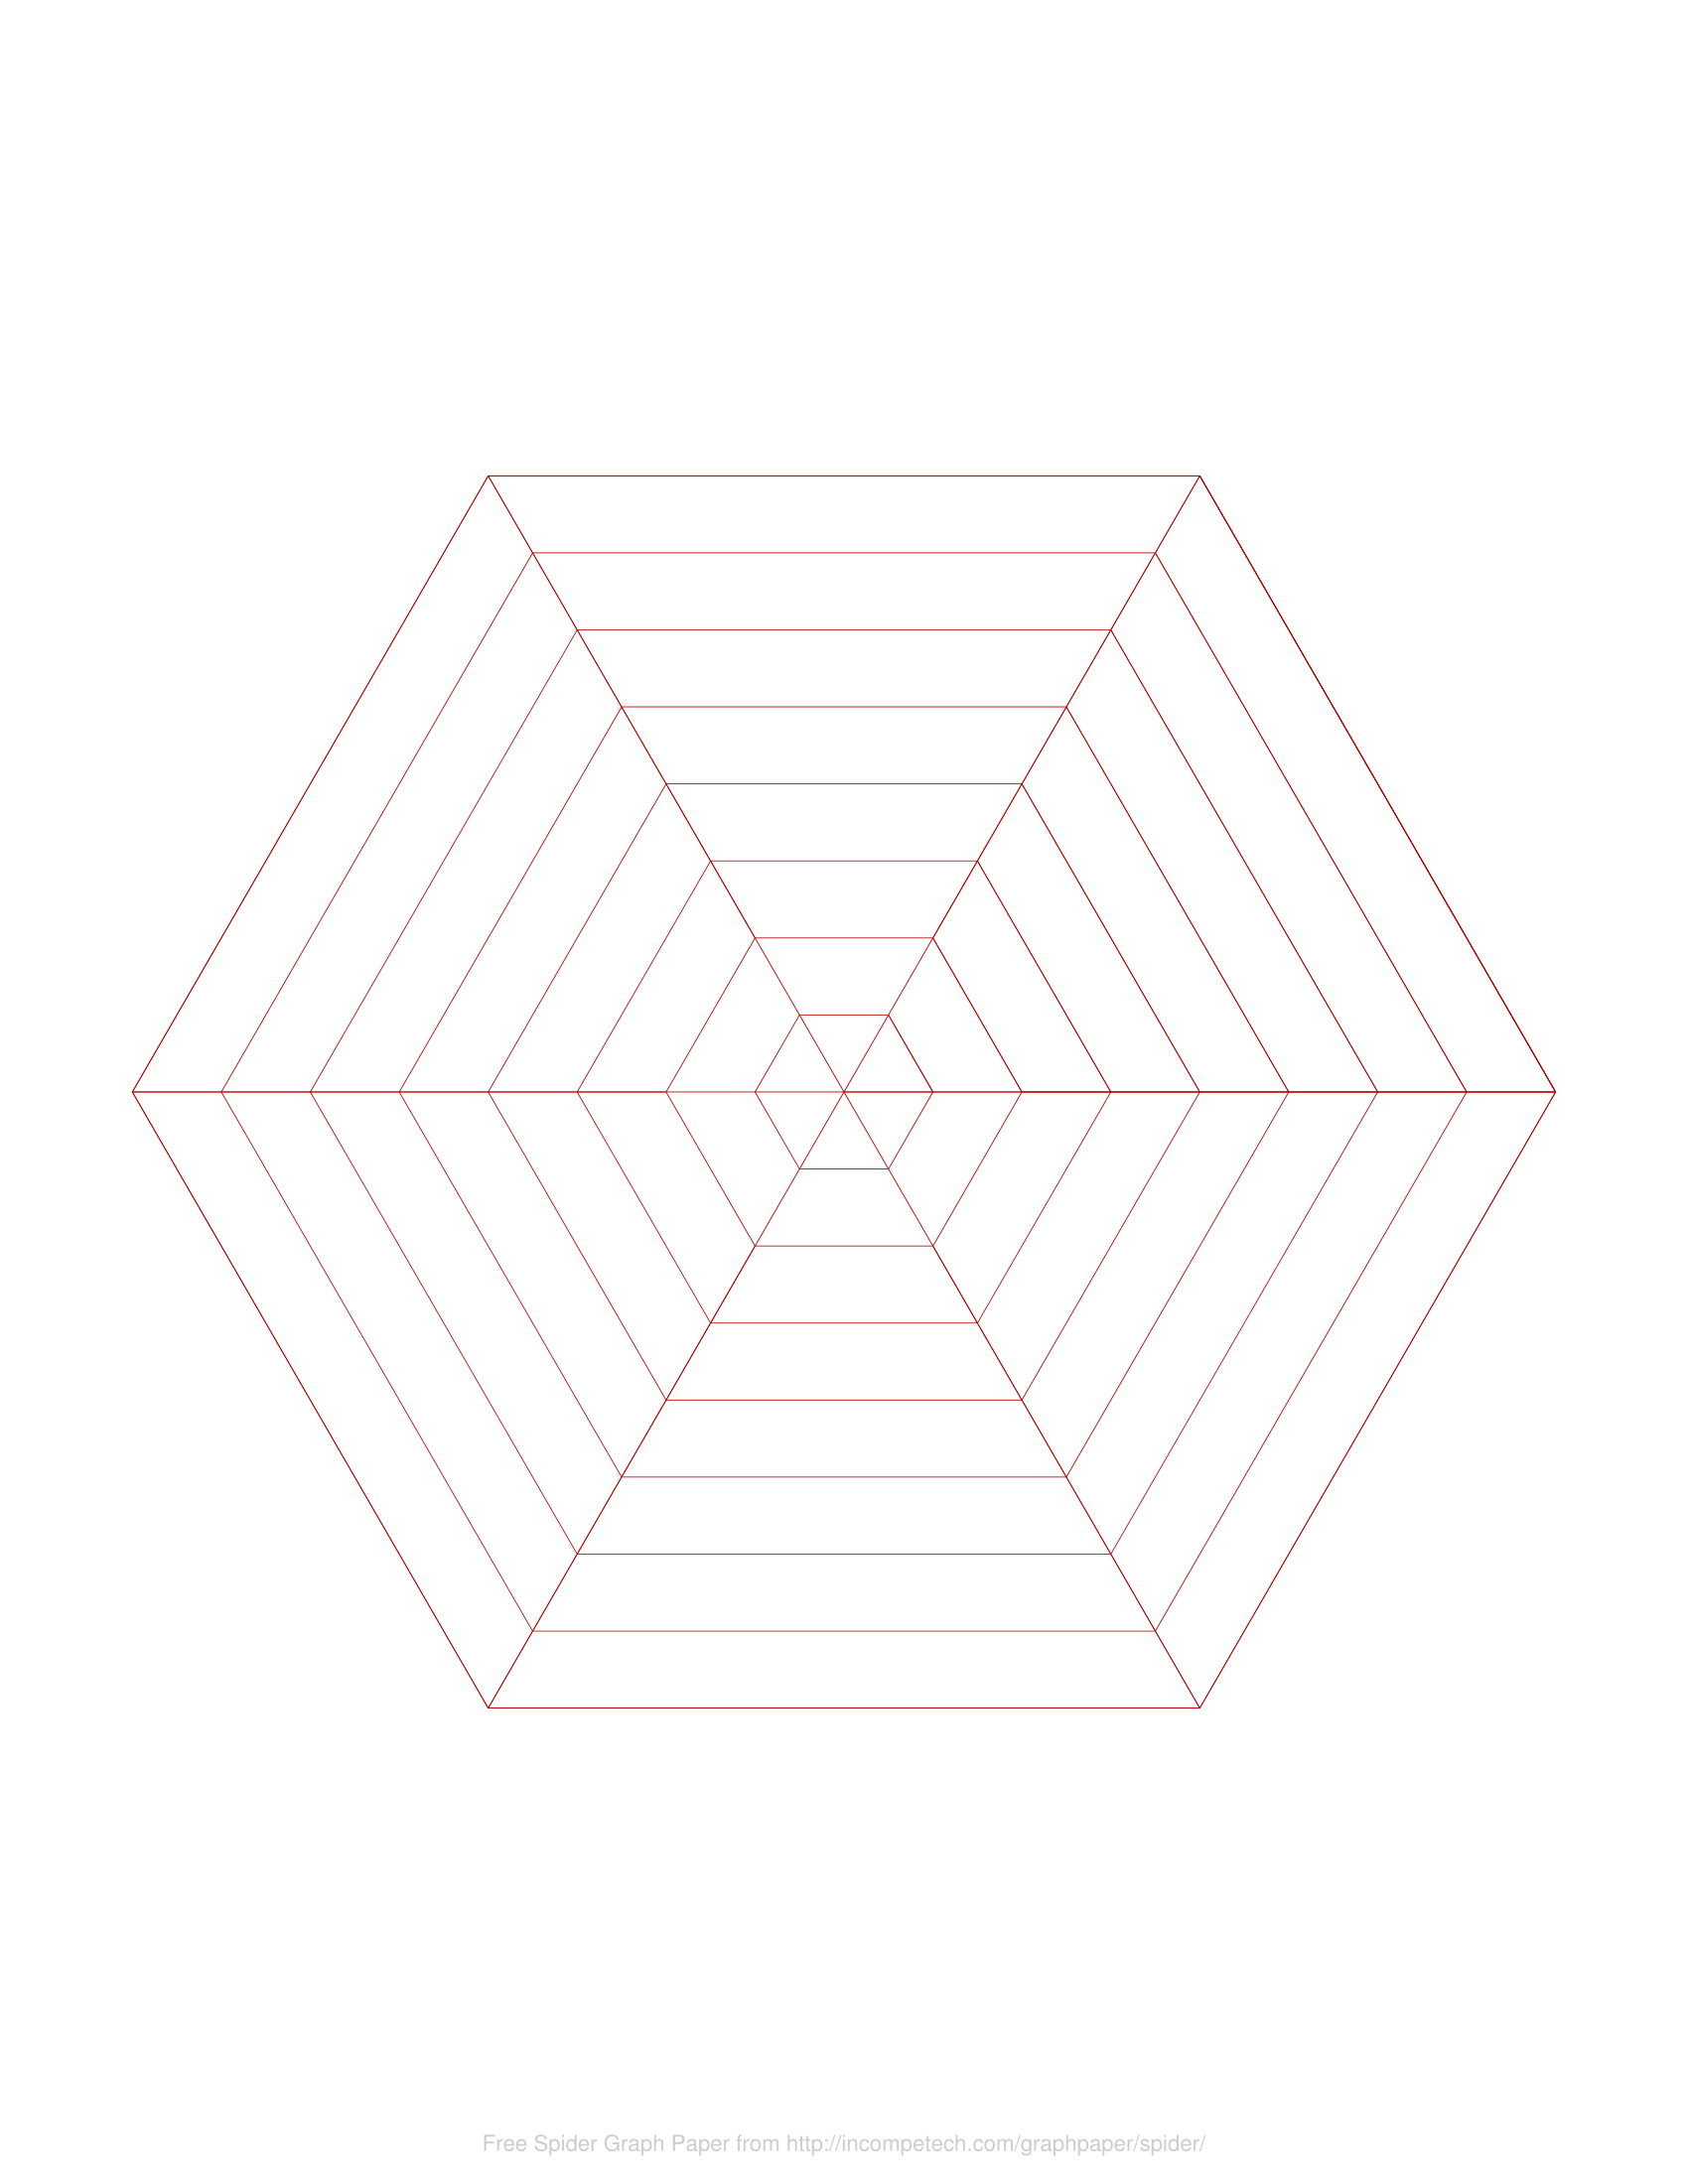 Free Online Graph Paper / Spider Within Blank Radar Chart Template